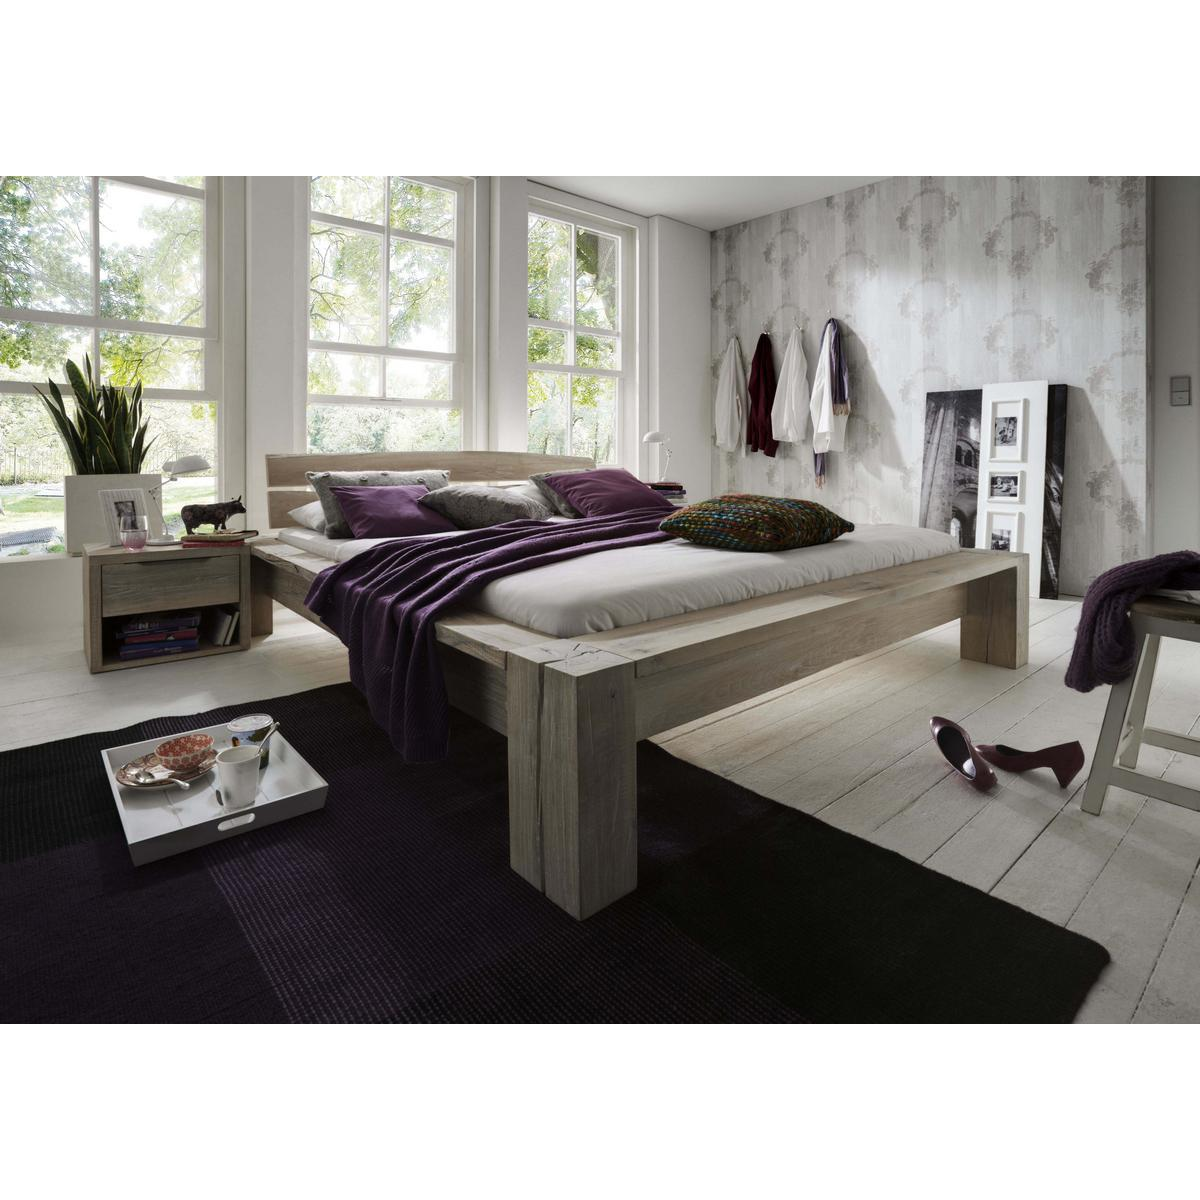 echtholz balkenbett 160x200 heavy sleep capri wildeiche. Black Bedroom Furniture Sets. Home Design Ideas